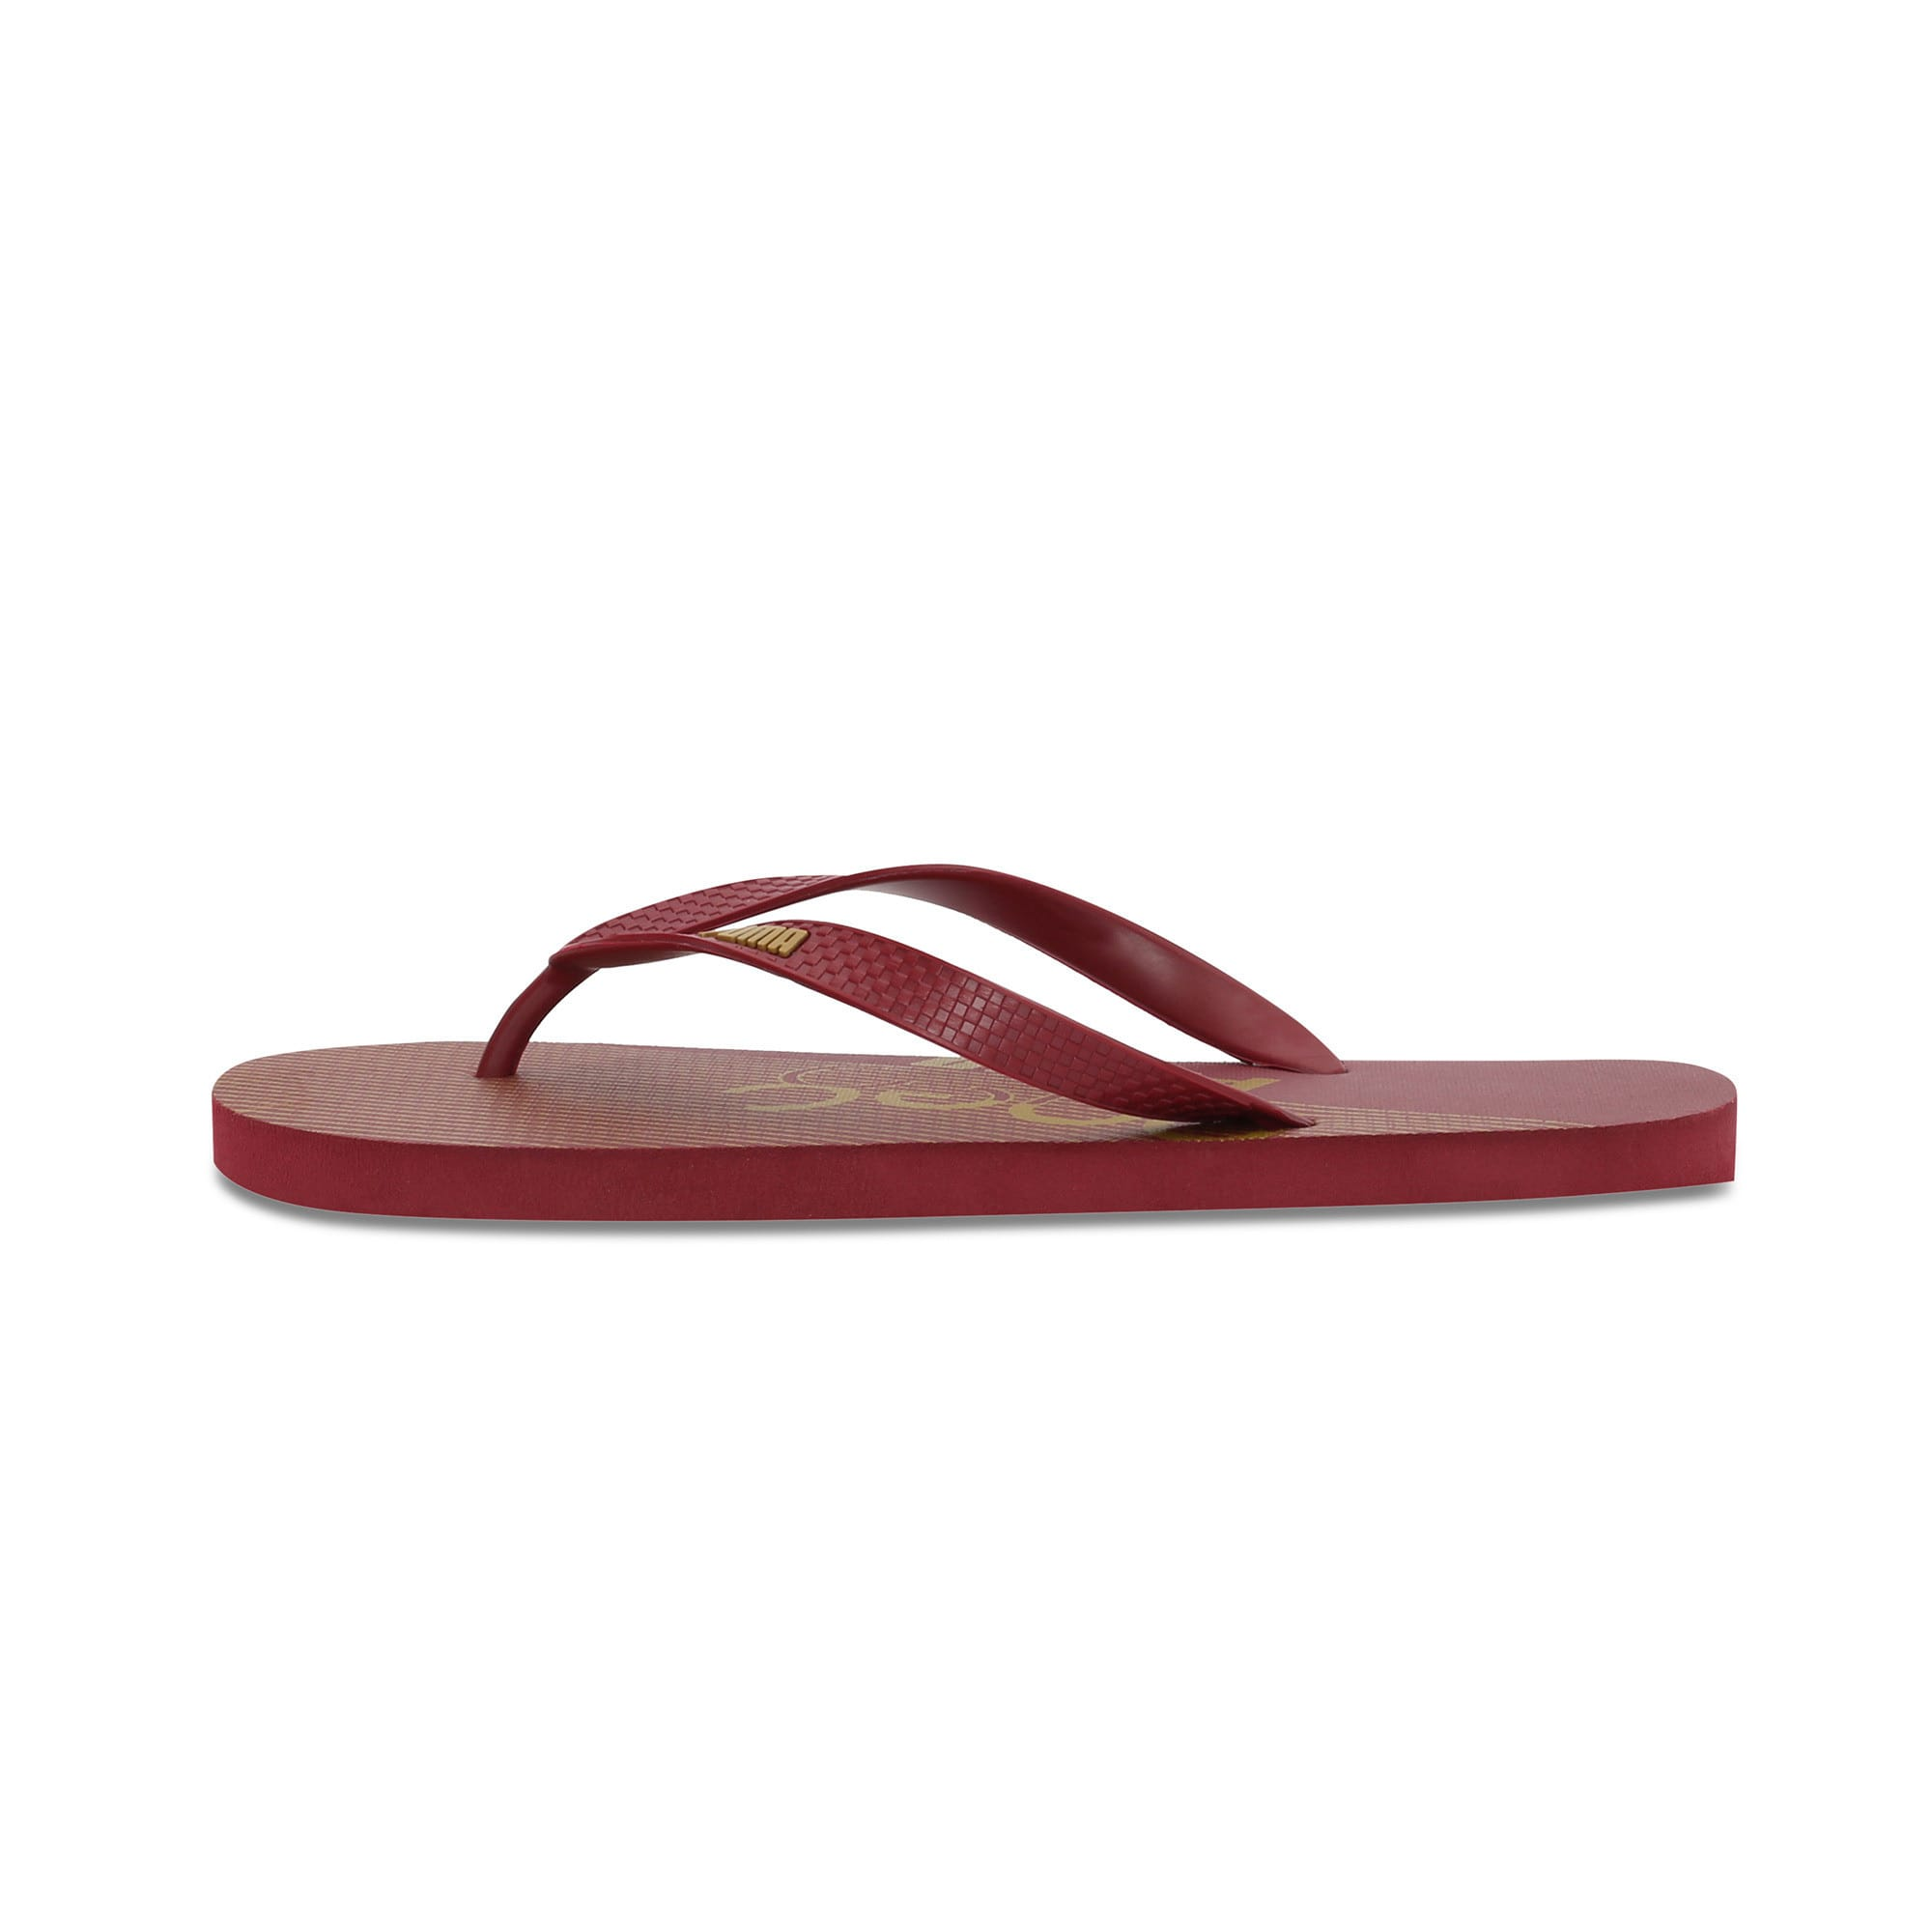 Thumbnail 1 of one8 FF IDP Unisex Flip Flops, Rhubarb-Puma Team Gold, medium-IND